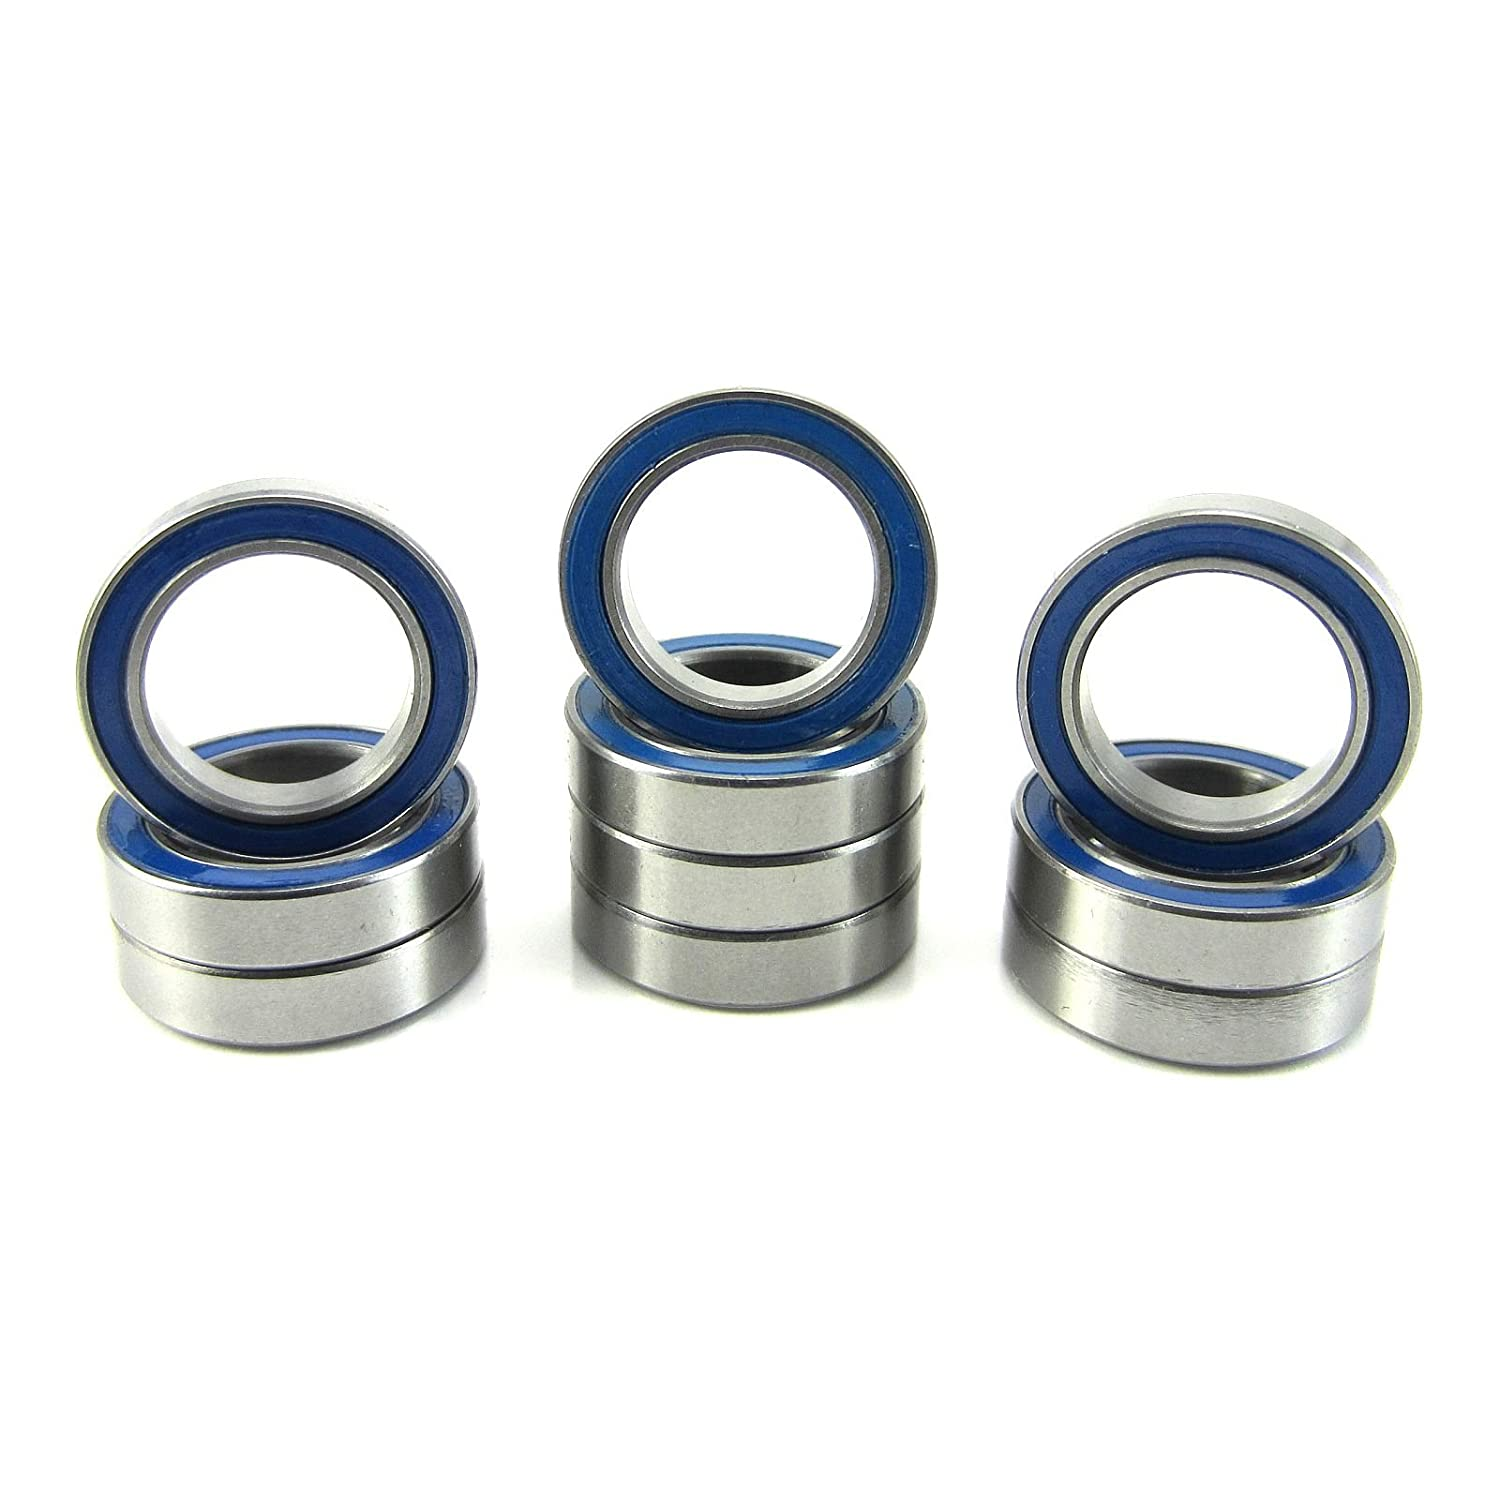 12x18x4mm Precision Ball Bearings ABEC 3 Rubber Seals (10) 6701-2RS-BU TRB RC